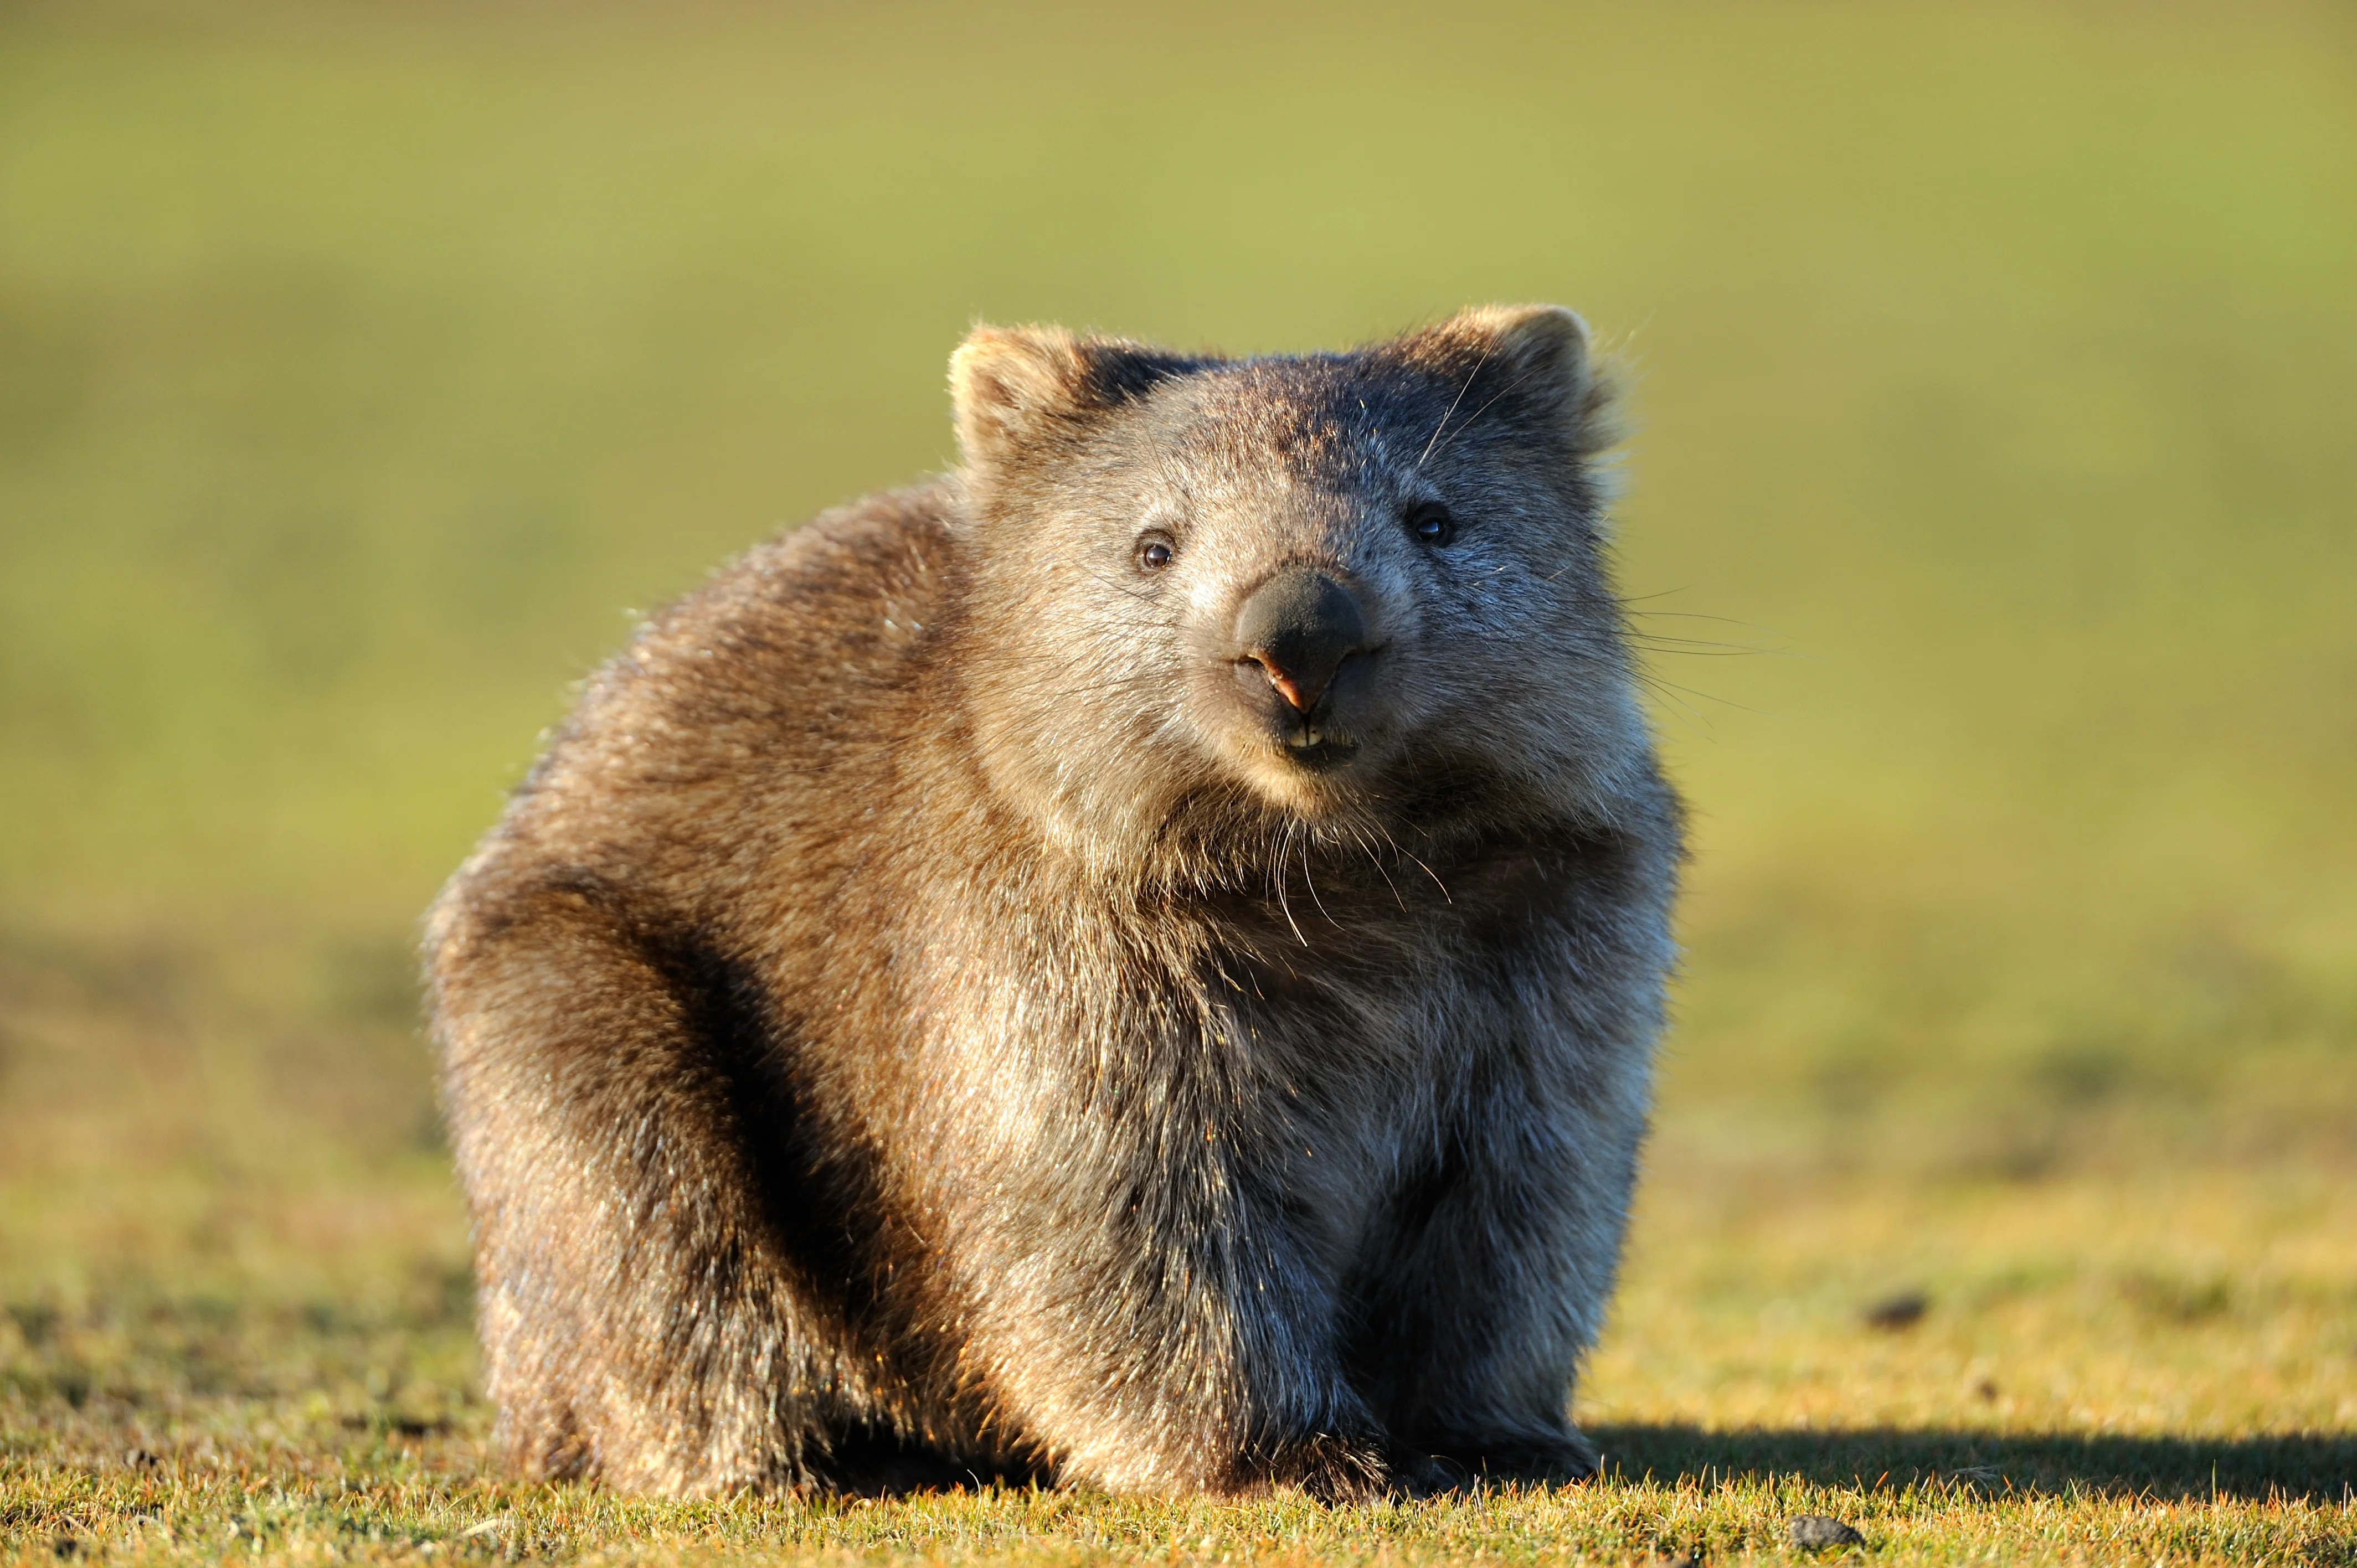 Australian Officials to Tourists: Stop Taking Selfies With Wombats